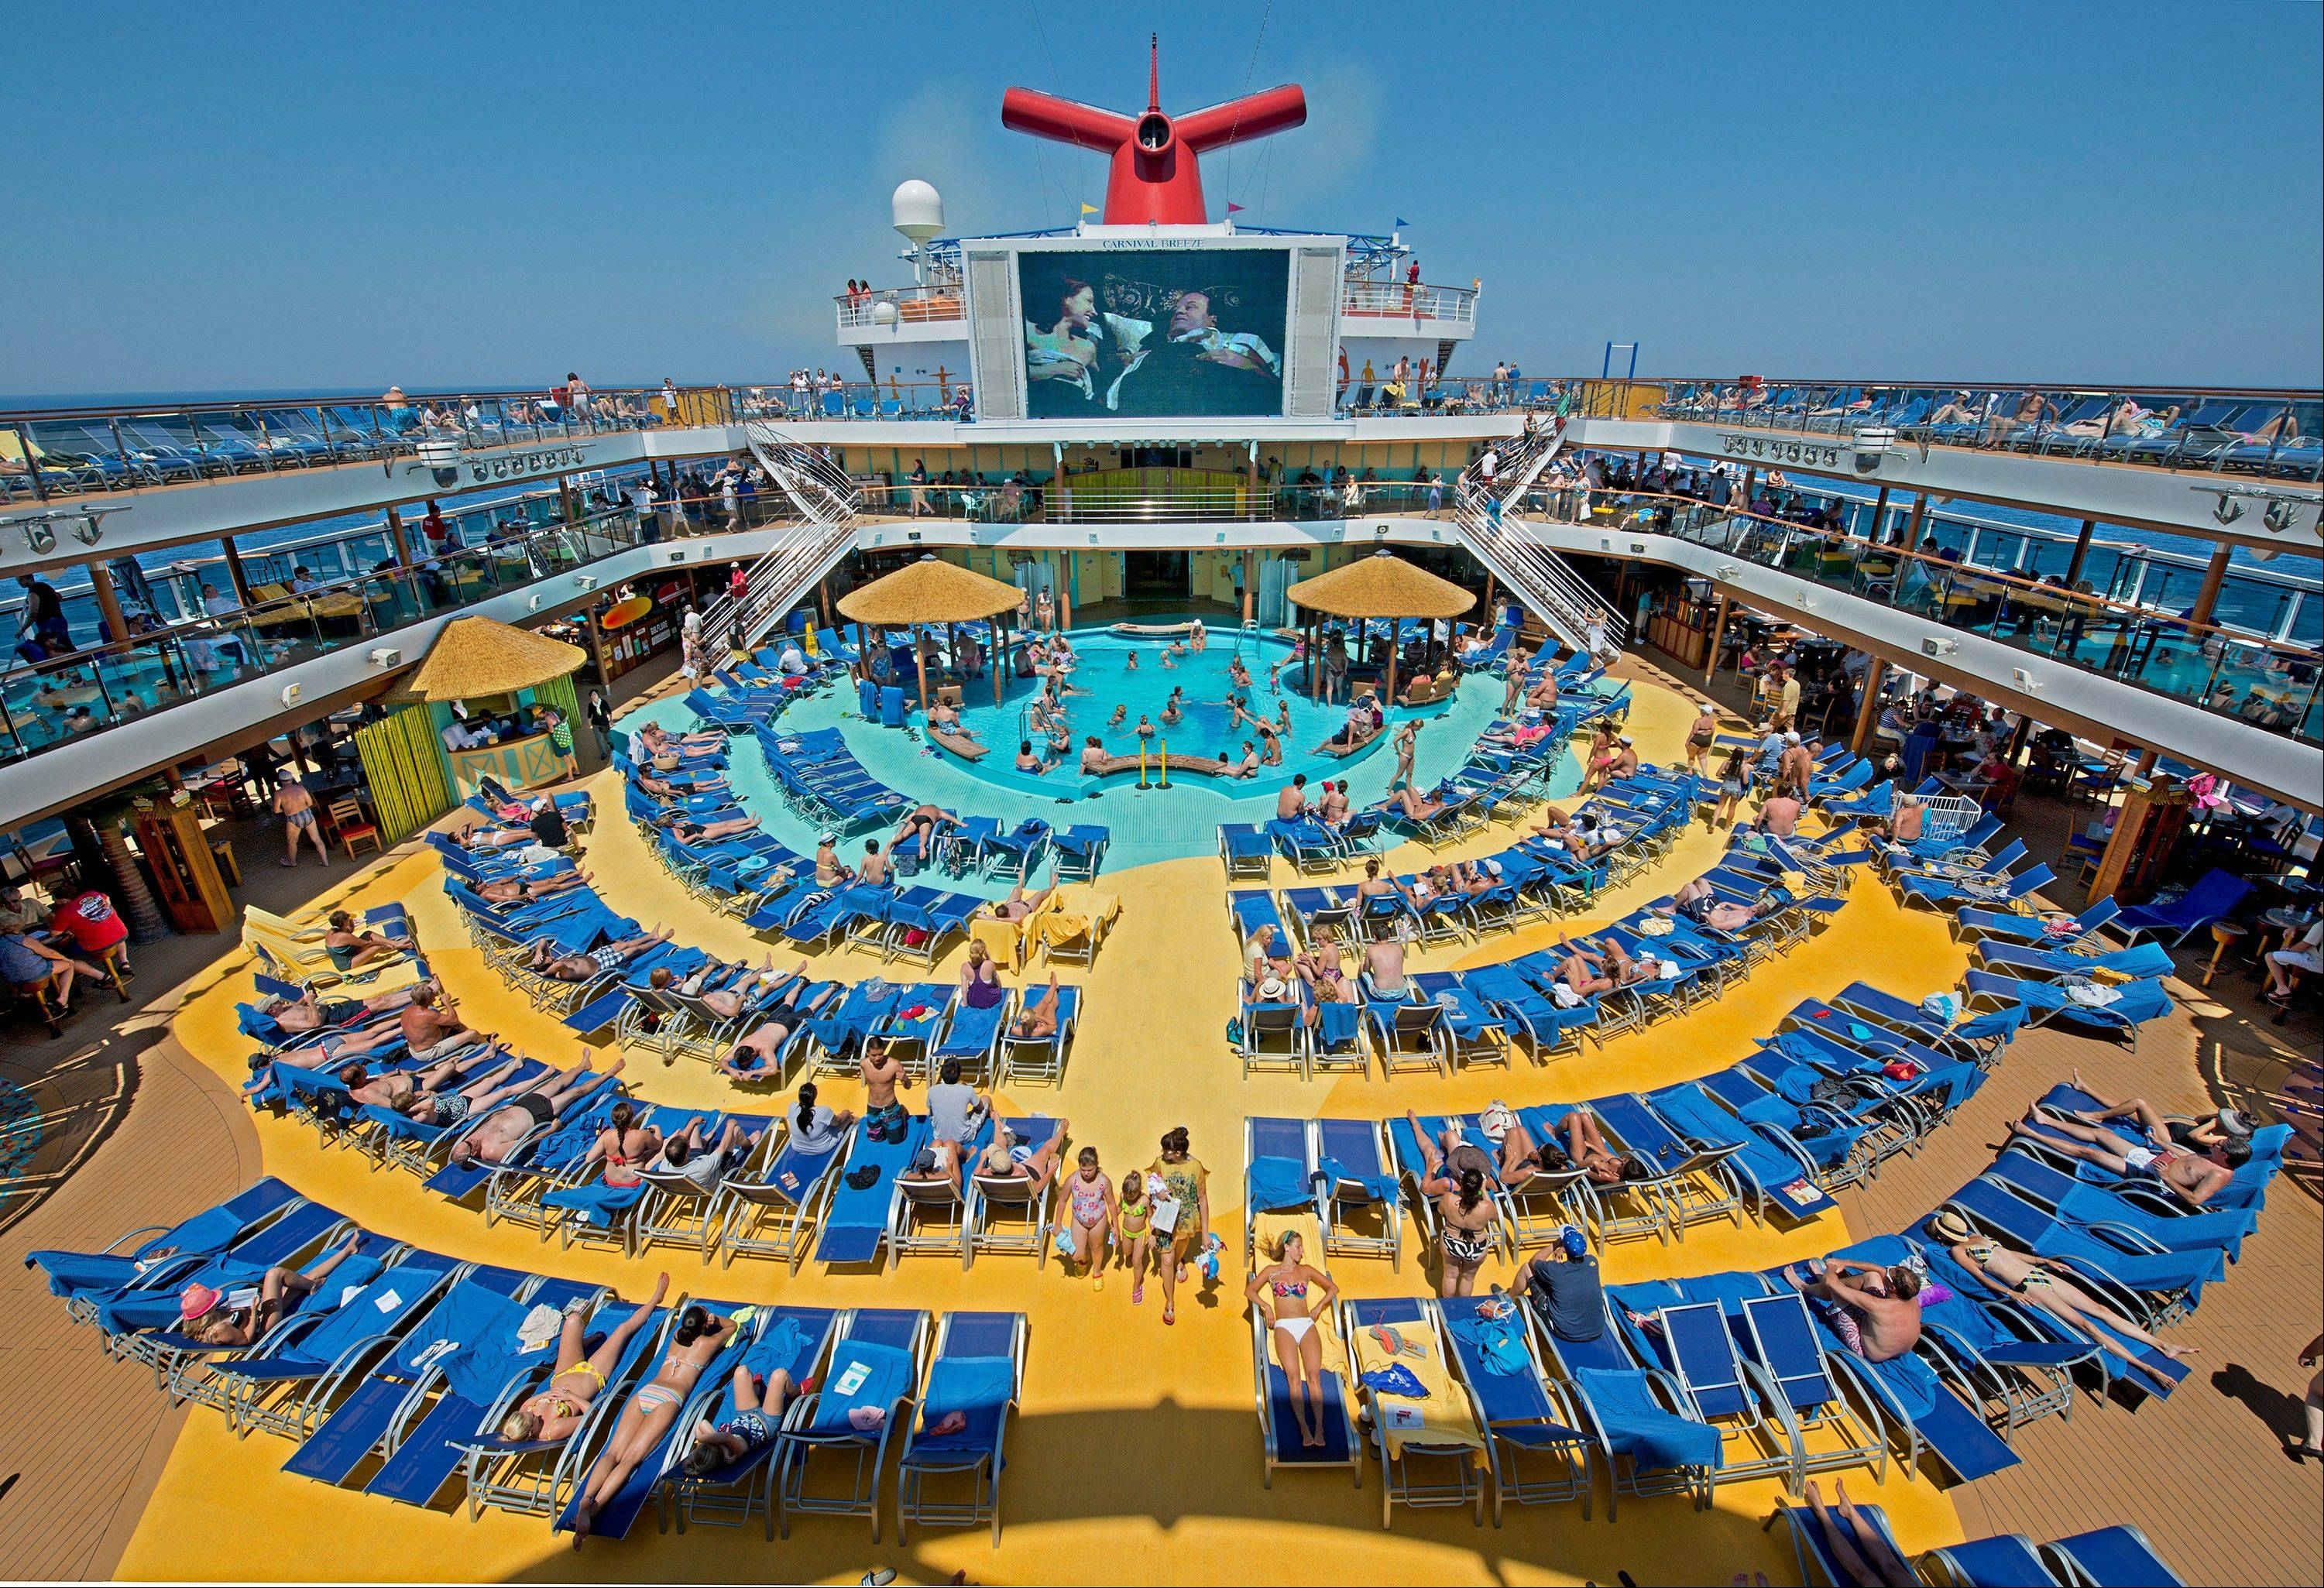 Vacationers aboard the Carnival Breeze enjoy sunbathing at sea while viewing a movie at the Carnival's Seaside Theatre, a lido deck poolside 270-square-foot LED screen offering concerts, sporting events and other programming.